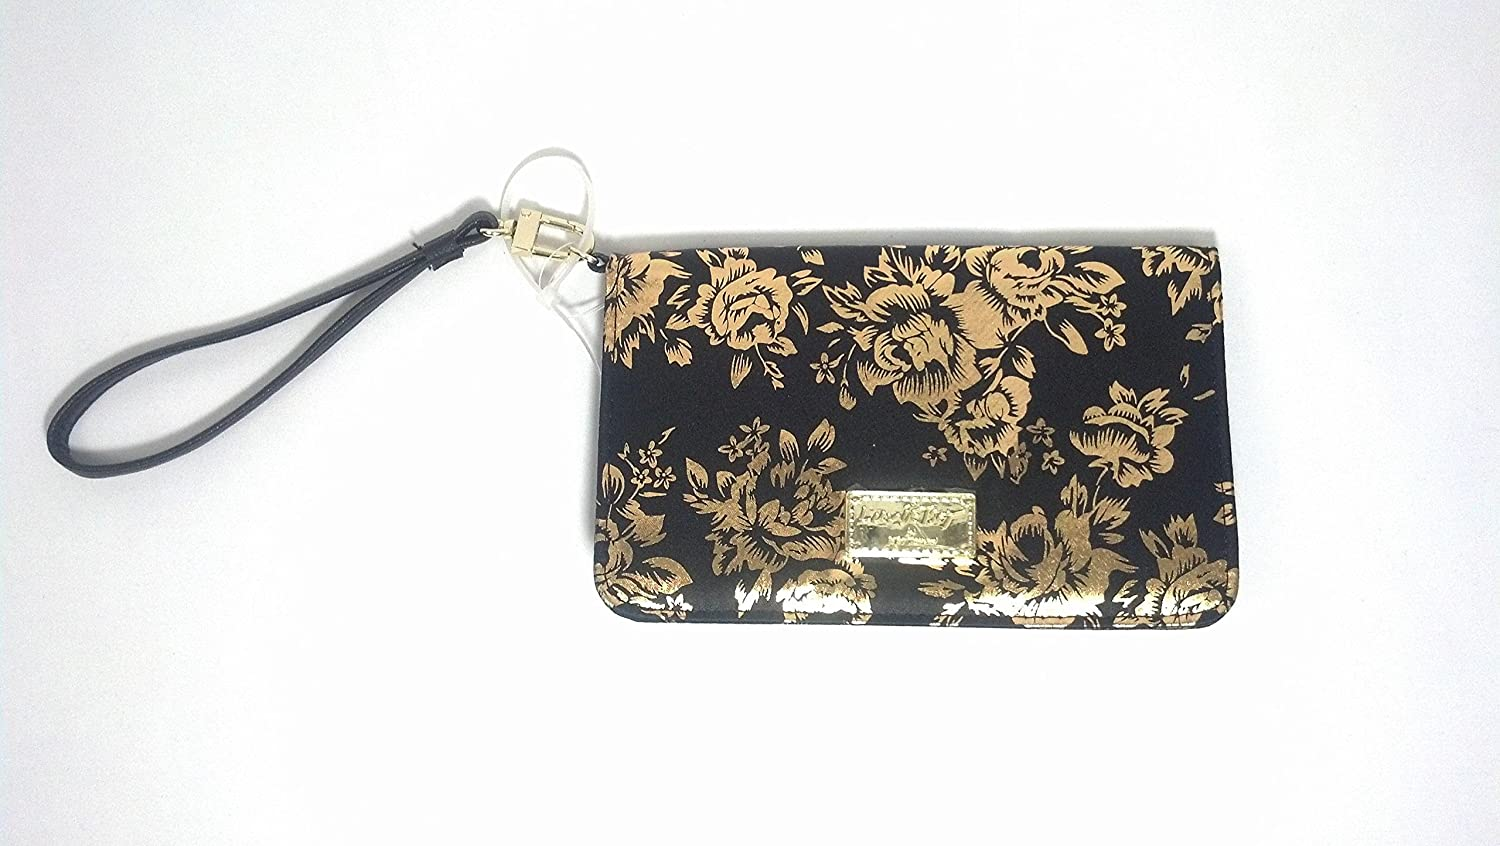 Black and Rose LBGLITZY Wristlet Handbag Betsey Johnson jH9fLfI4